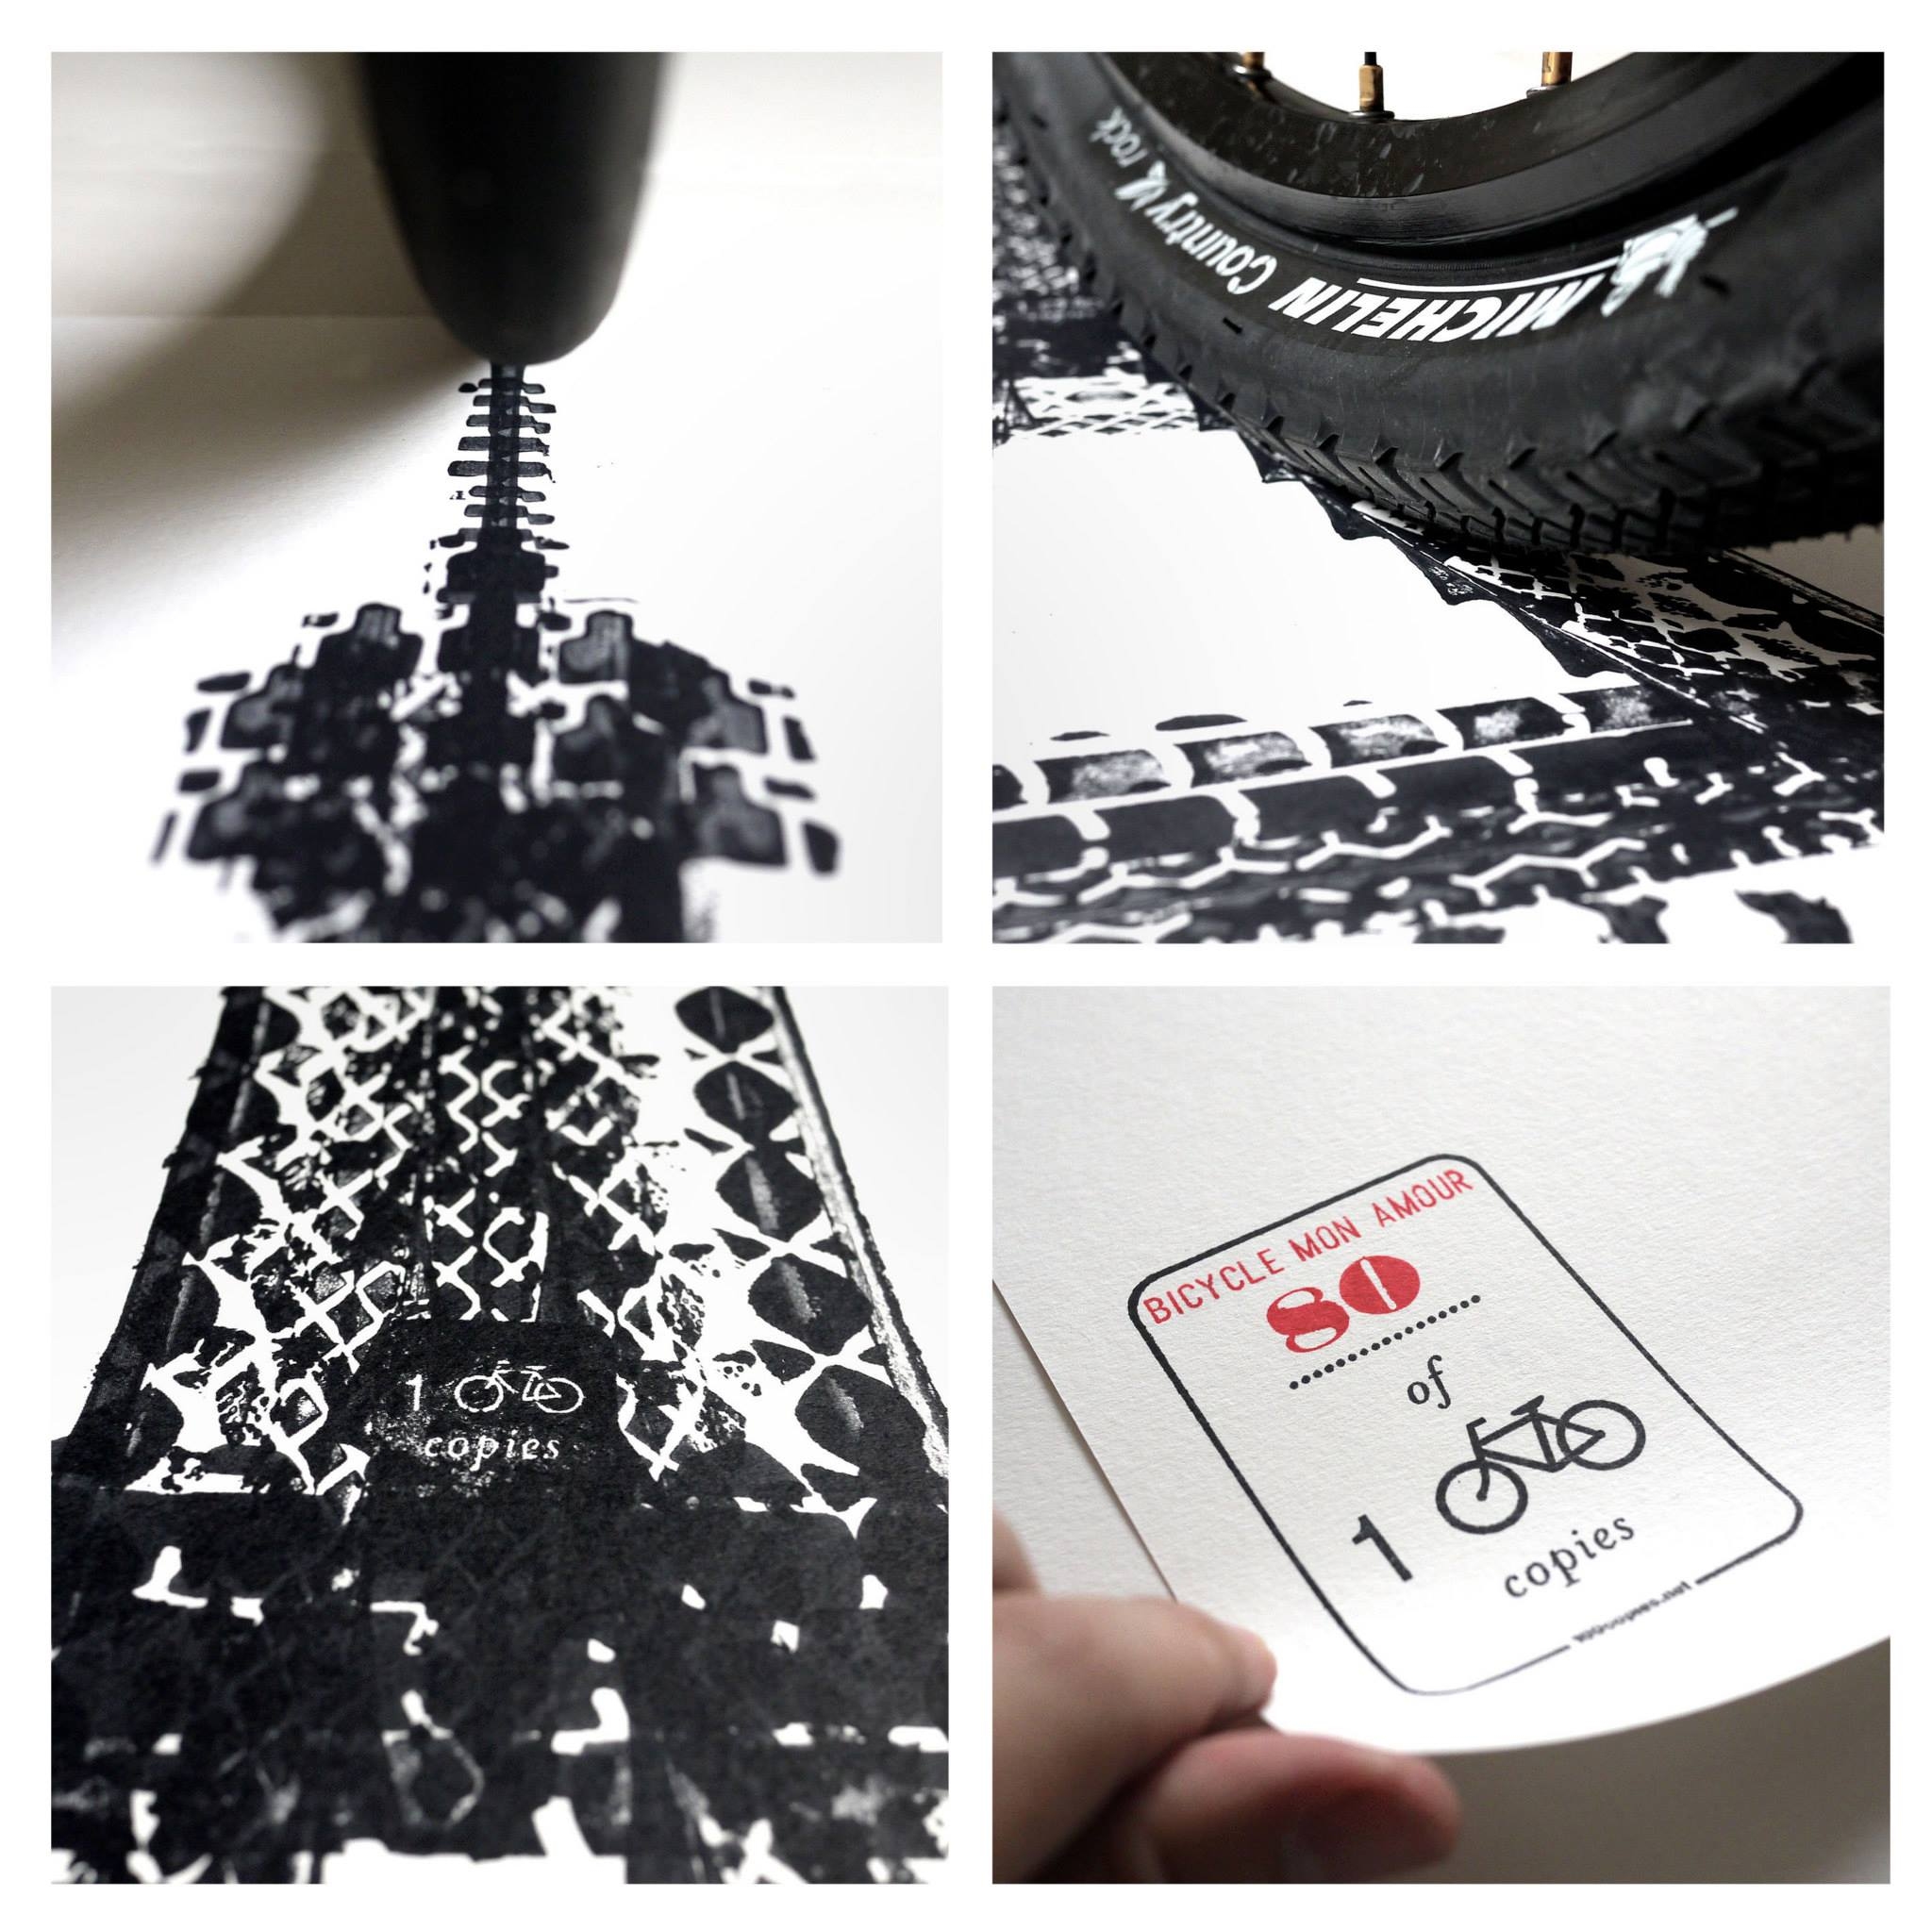 Bycicle Mon Amour | ©100copies